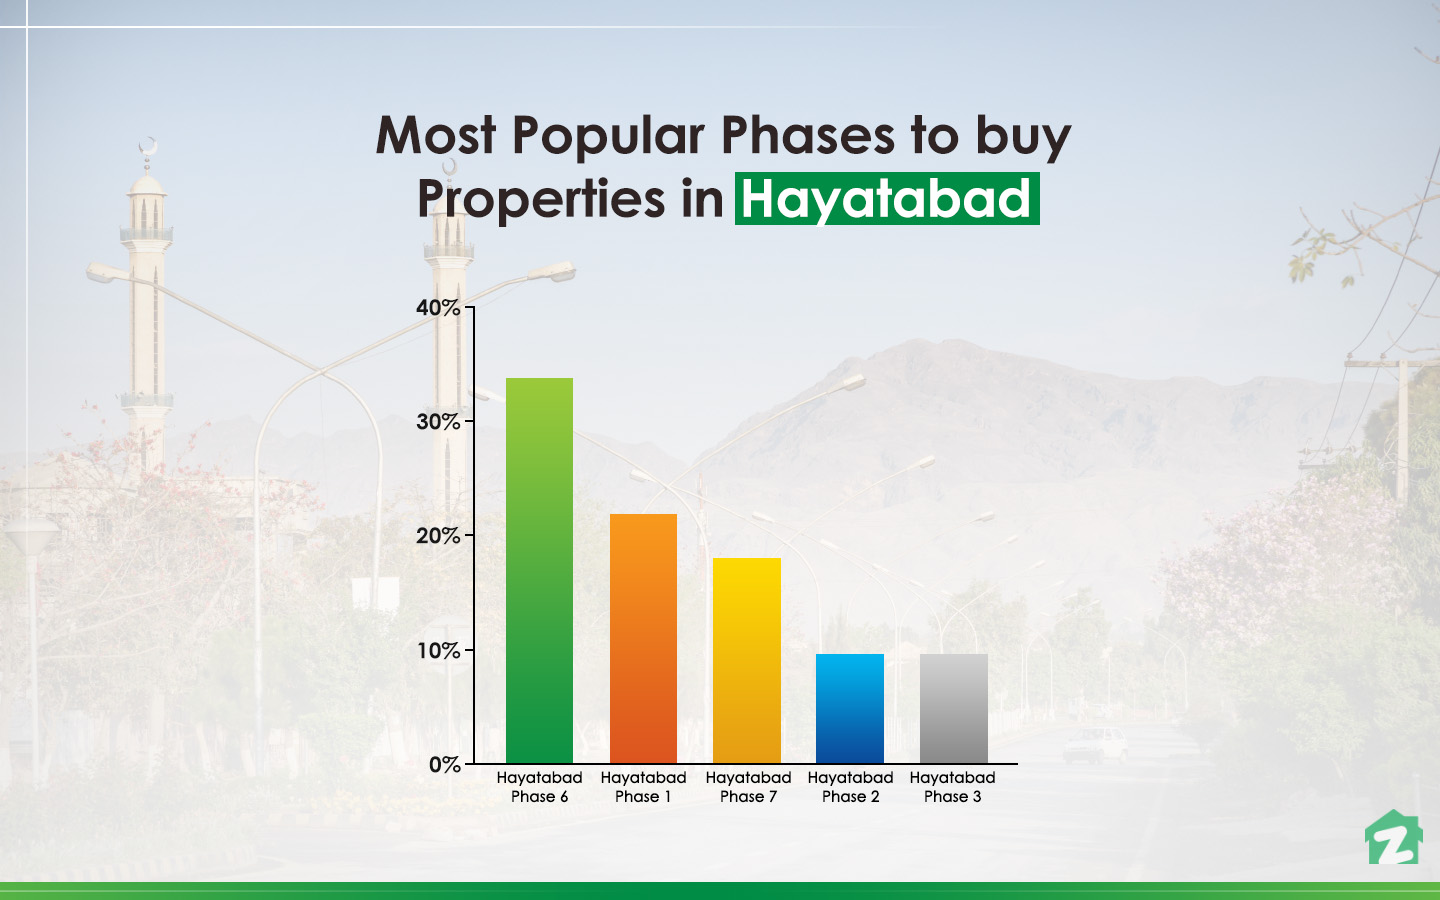 Popular phases for buying properties in Hayatabad